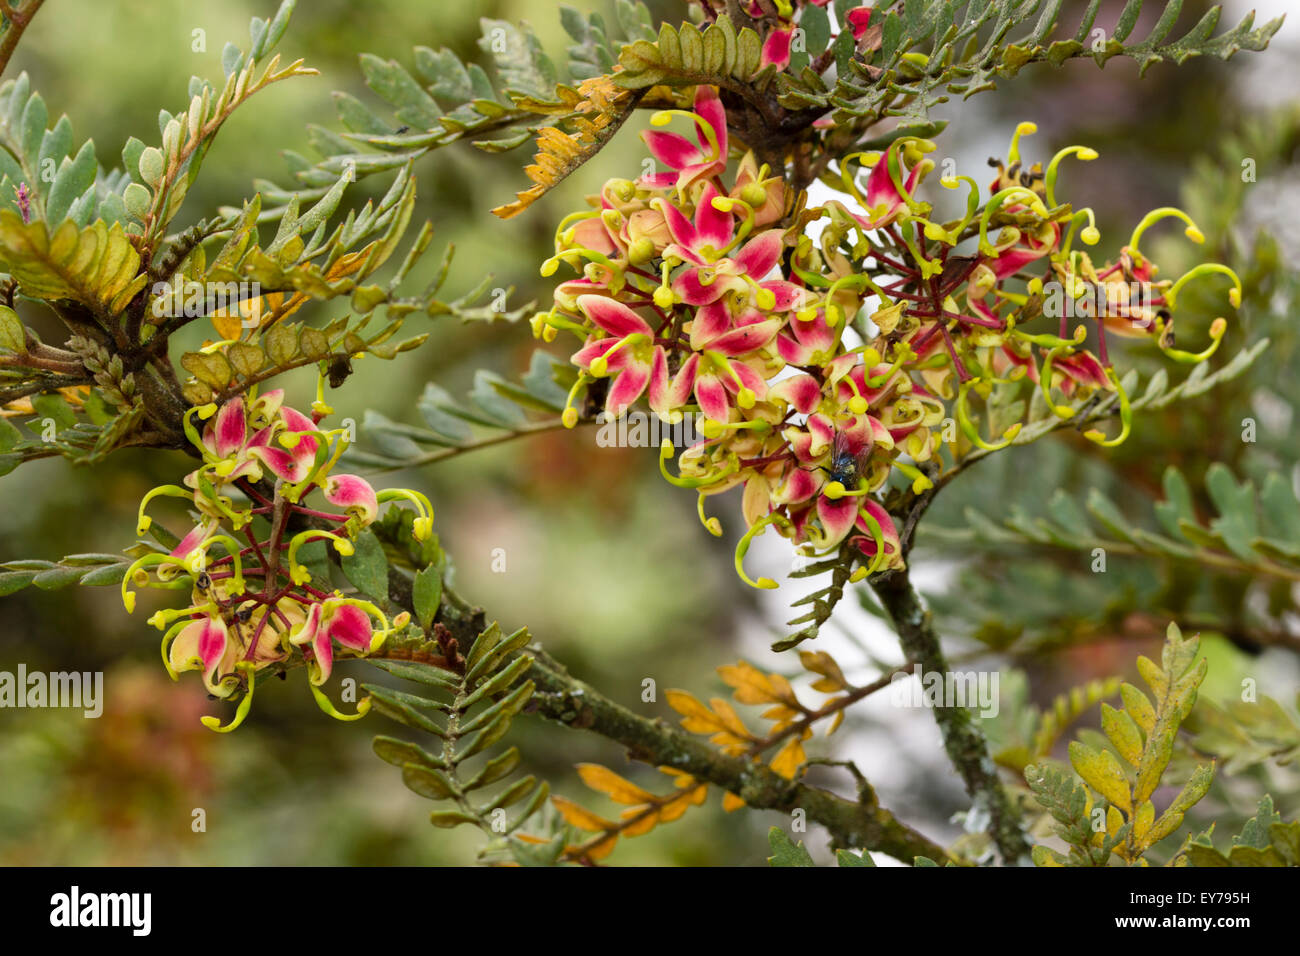 summer-flowers-of-the-large-evergreen-half-hardy-shrub-lomatia-ferruginea-EY795H.jpg